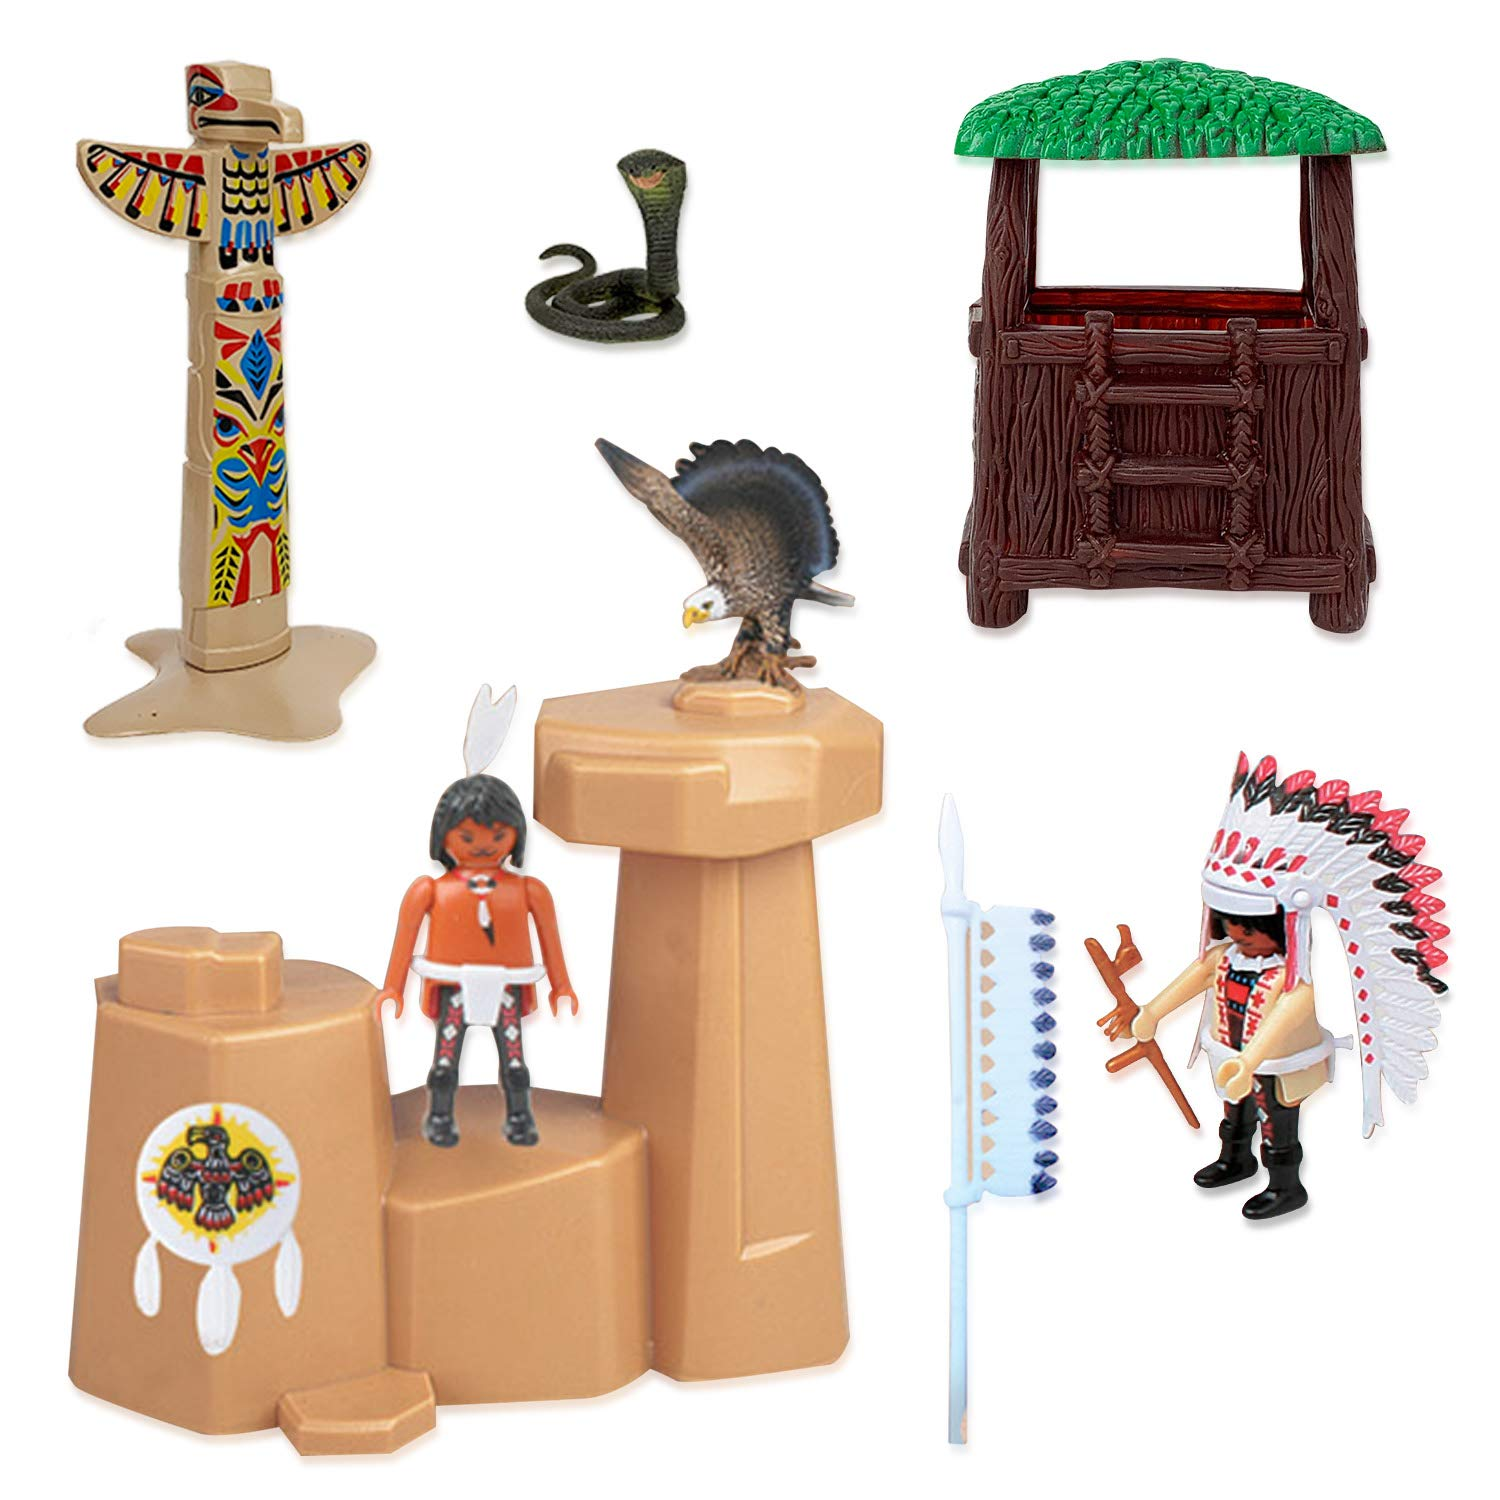 Educational Toy Soldiers Native American Action Figurines and Accessories Liberty Imports Deluxe Wild West Cowboys /& Indians Plastic Figures Playset